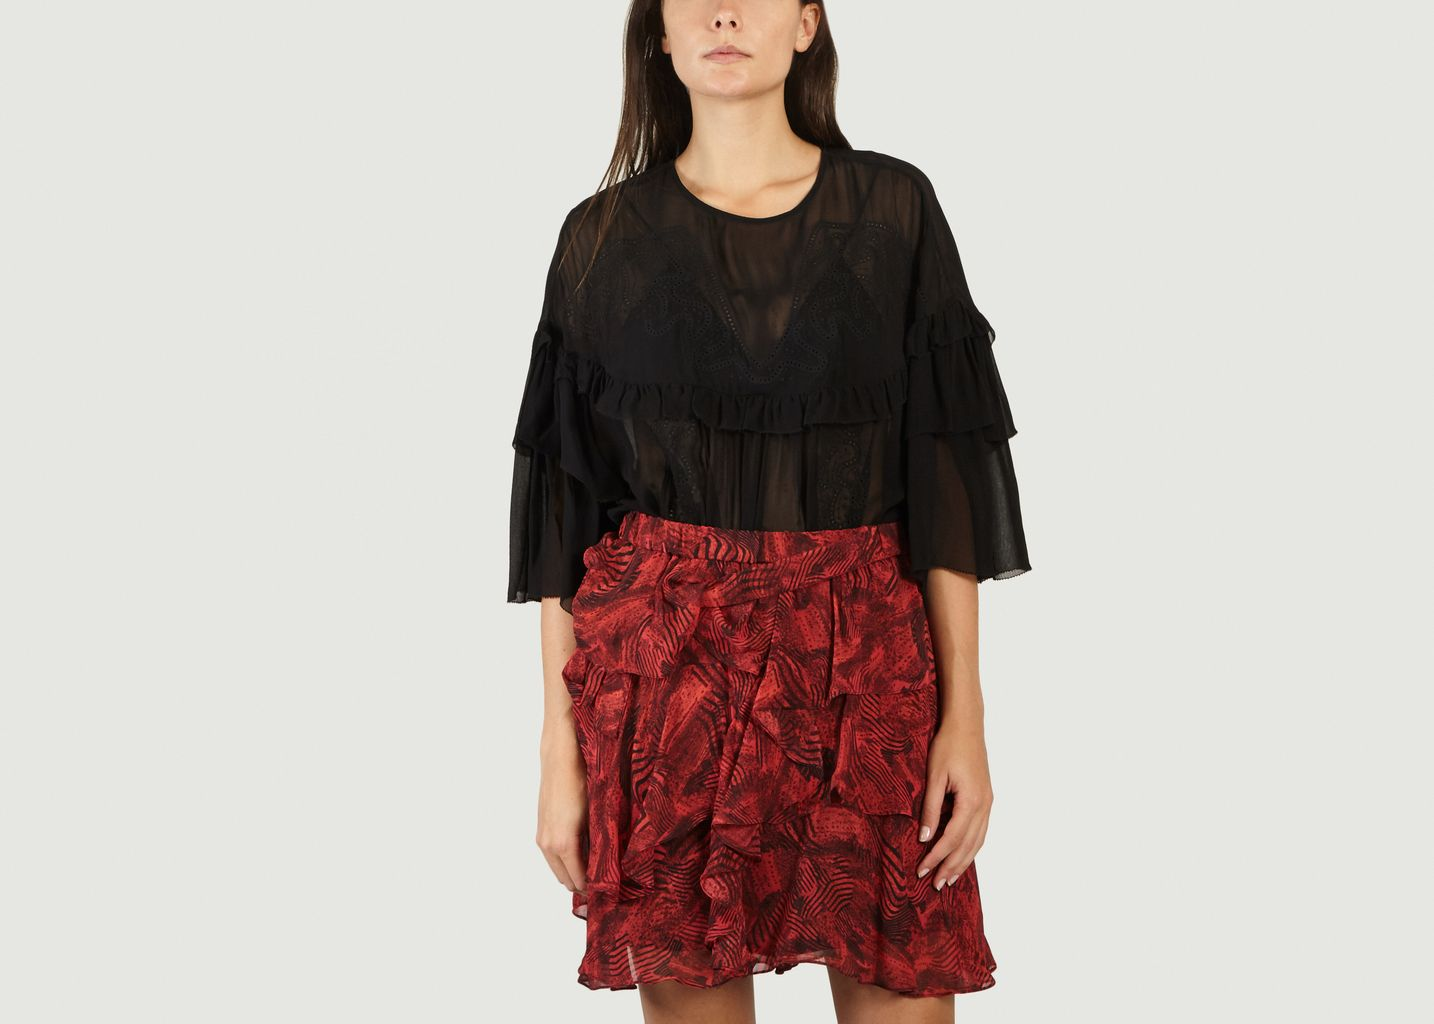 Top A Broderie Anglaise Sude - IRO